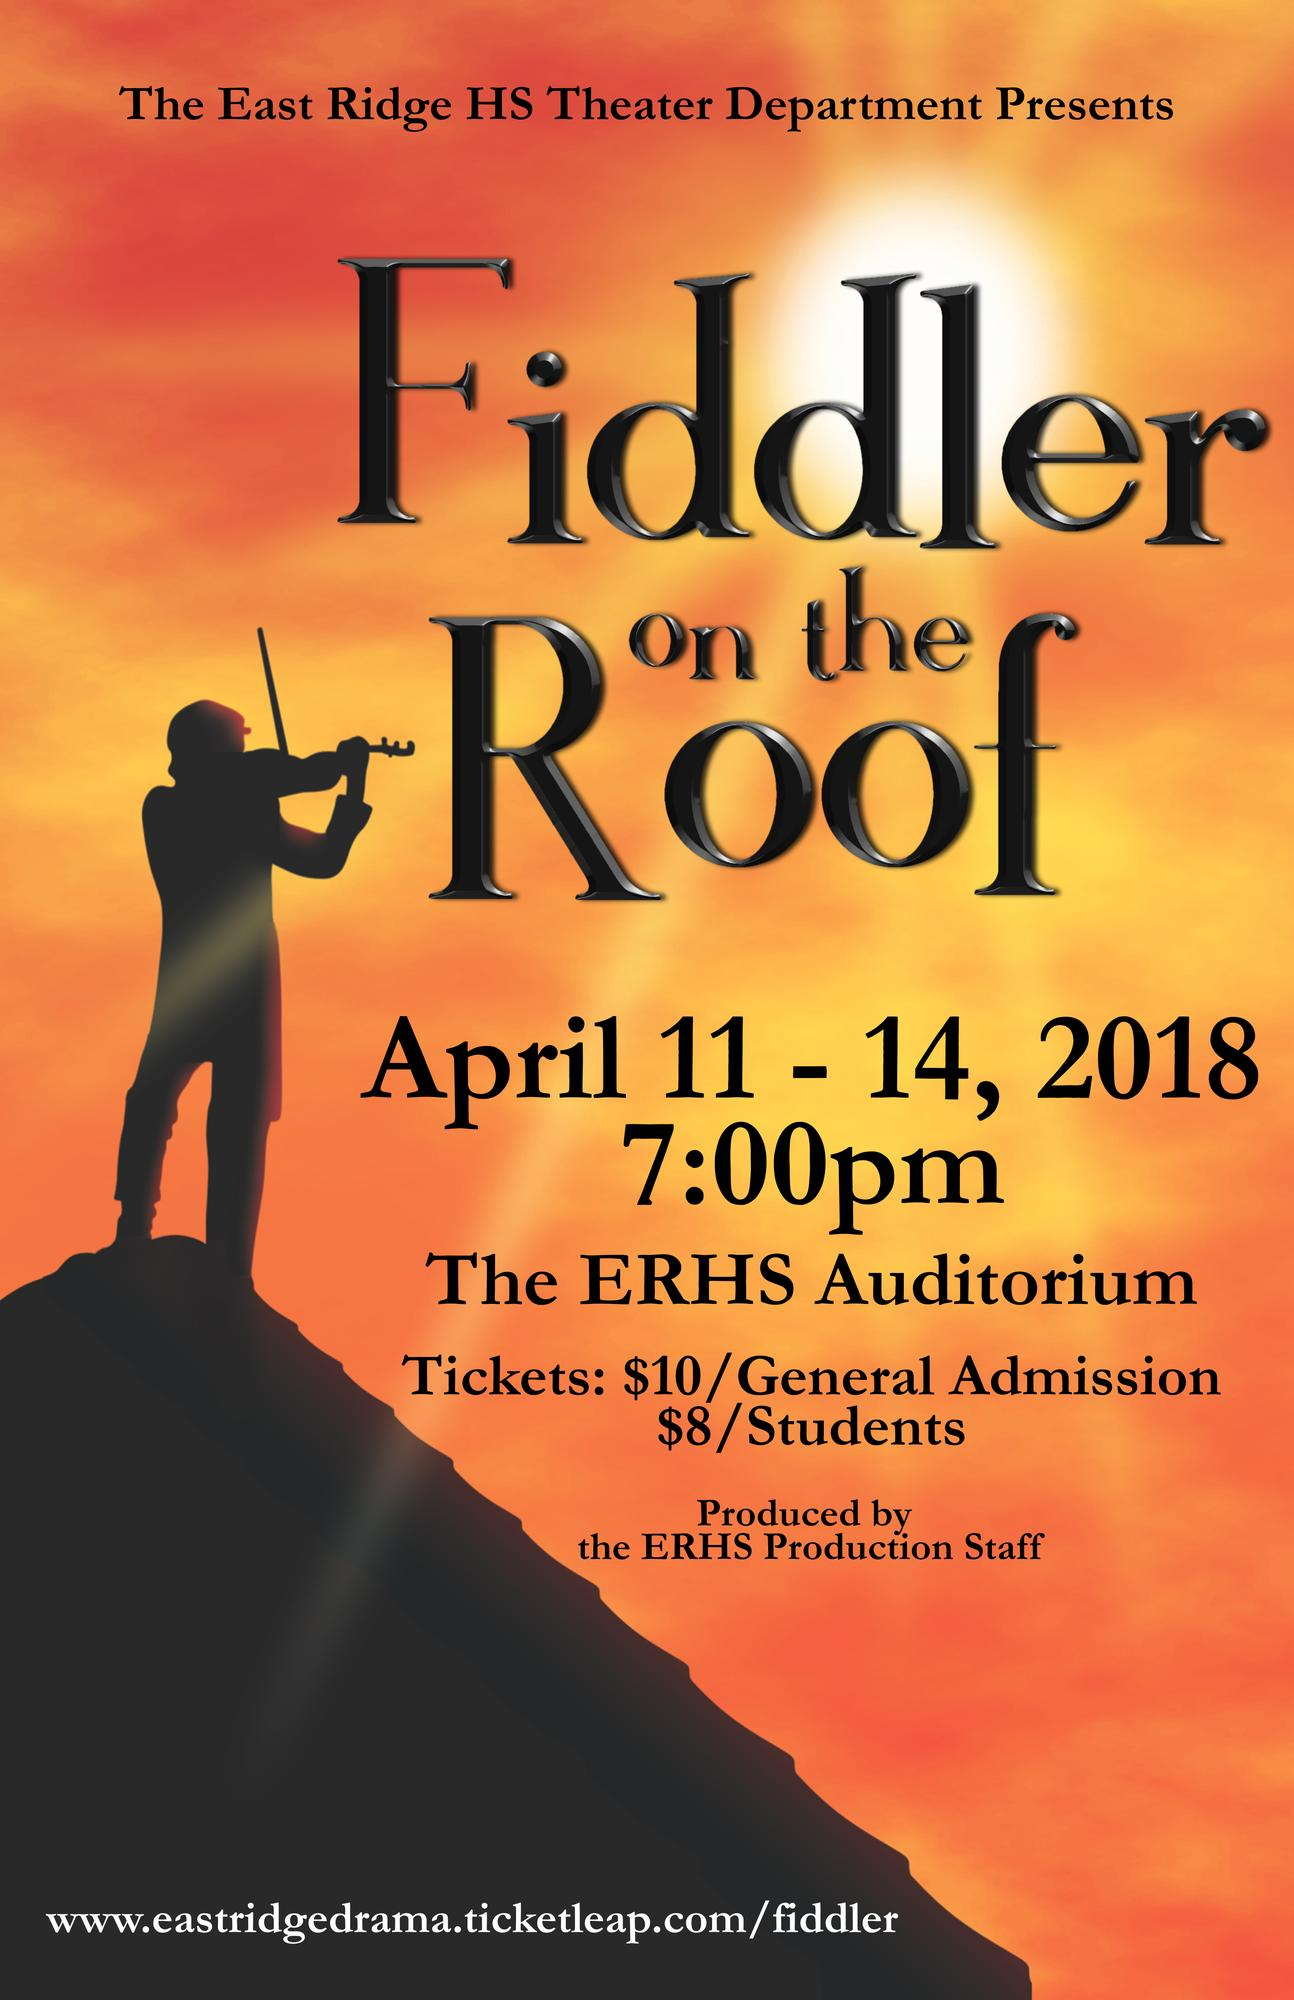 East Ridge High School Theater Department Tickets